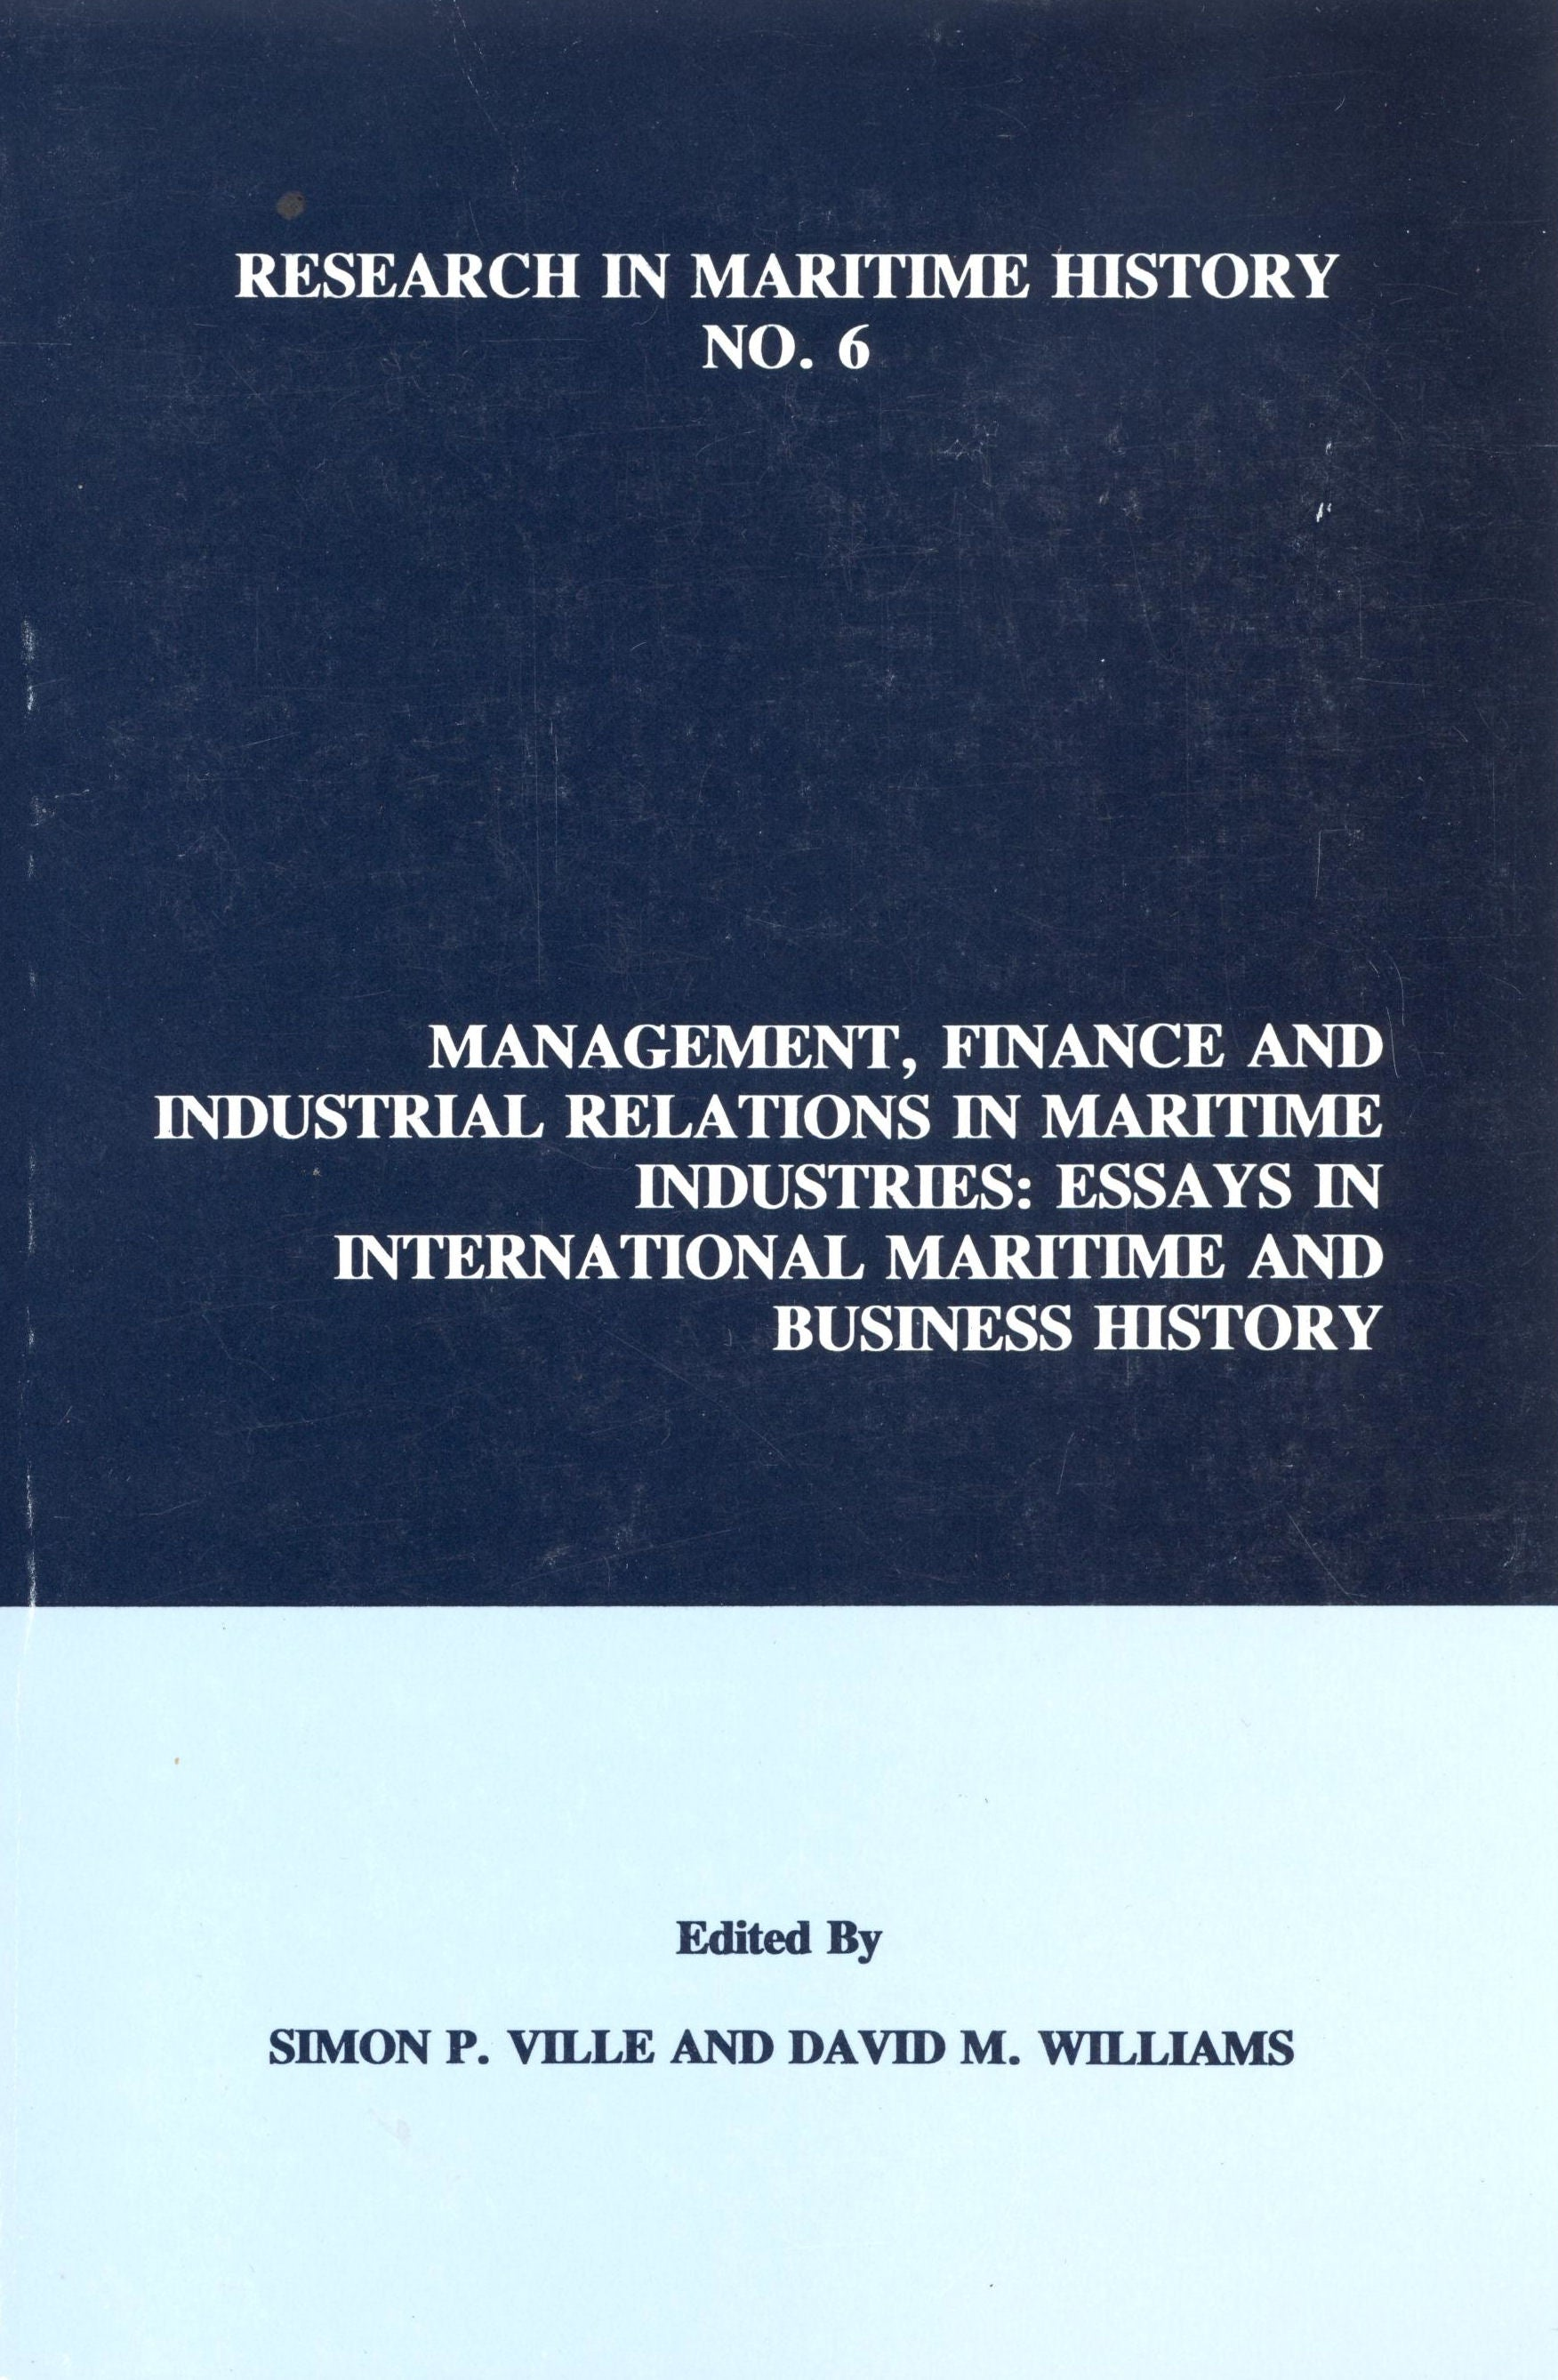 Management, Finance and Industrial Relations in Maritime Industries